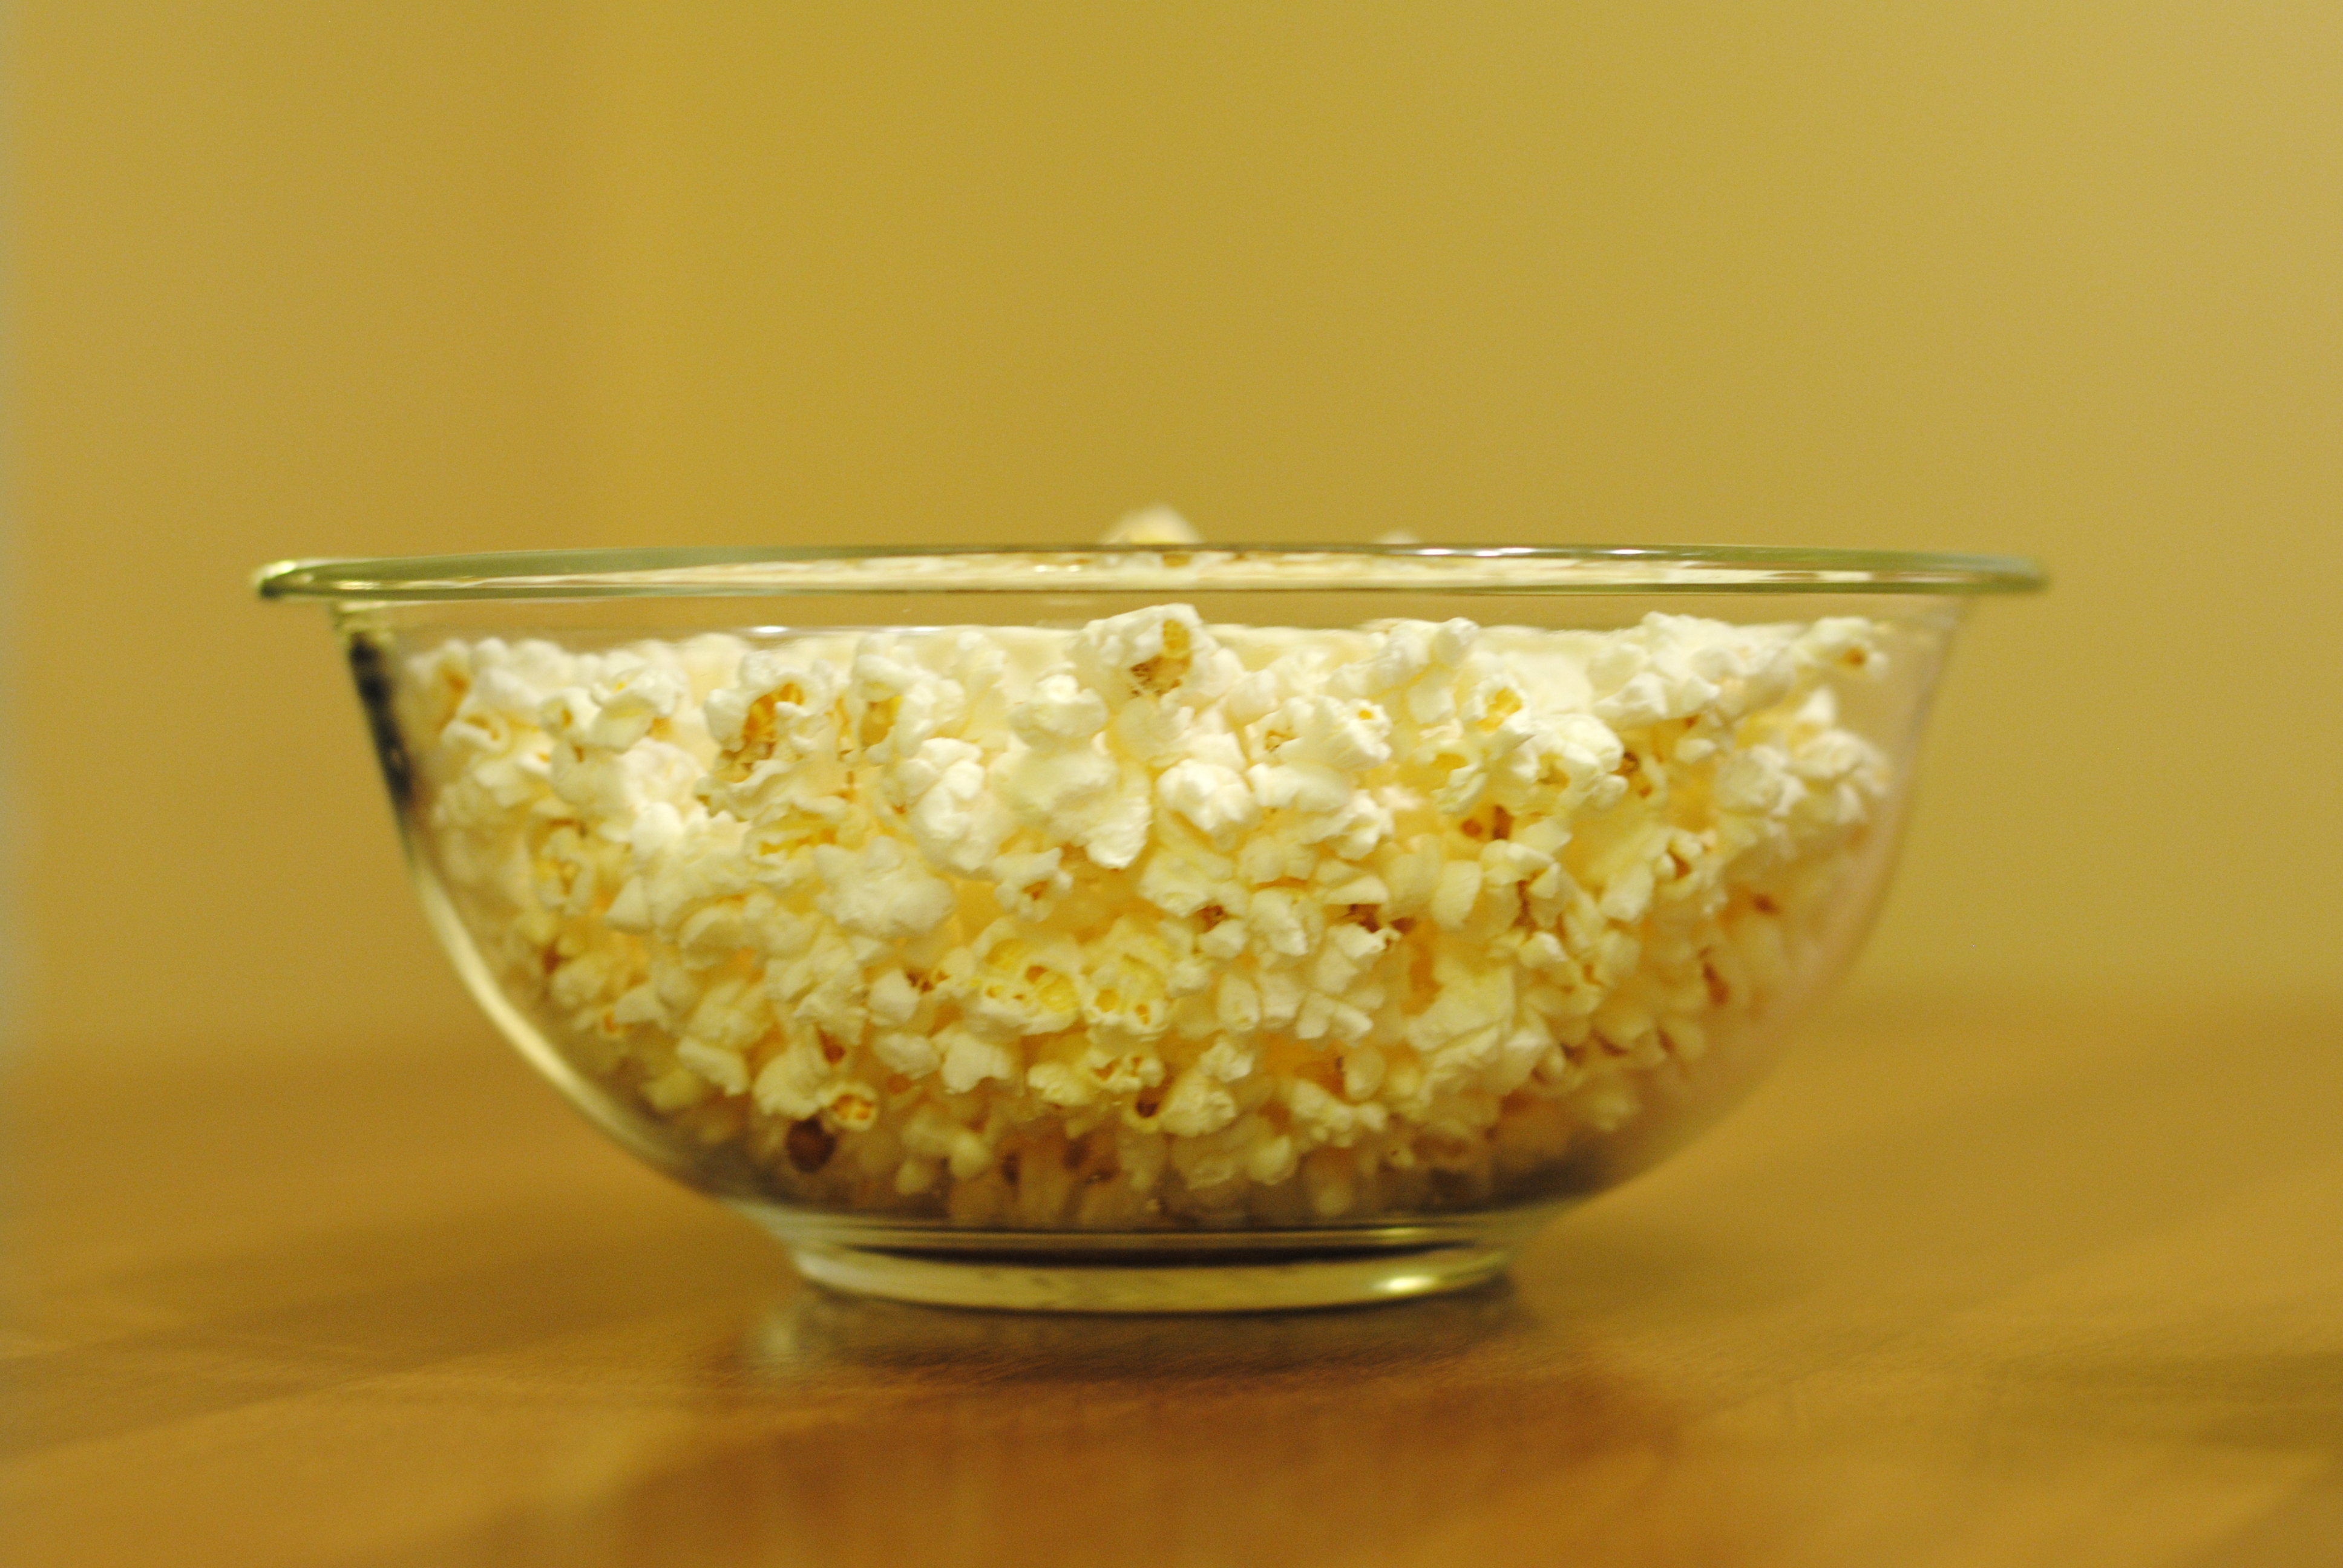 homemade microwave popcorn | Cooking Amid Chaos